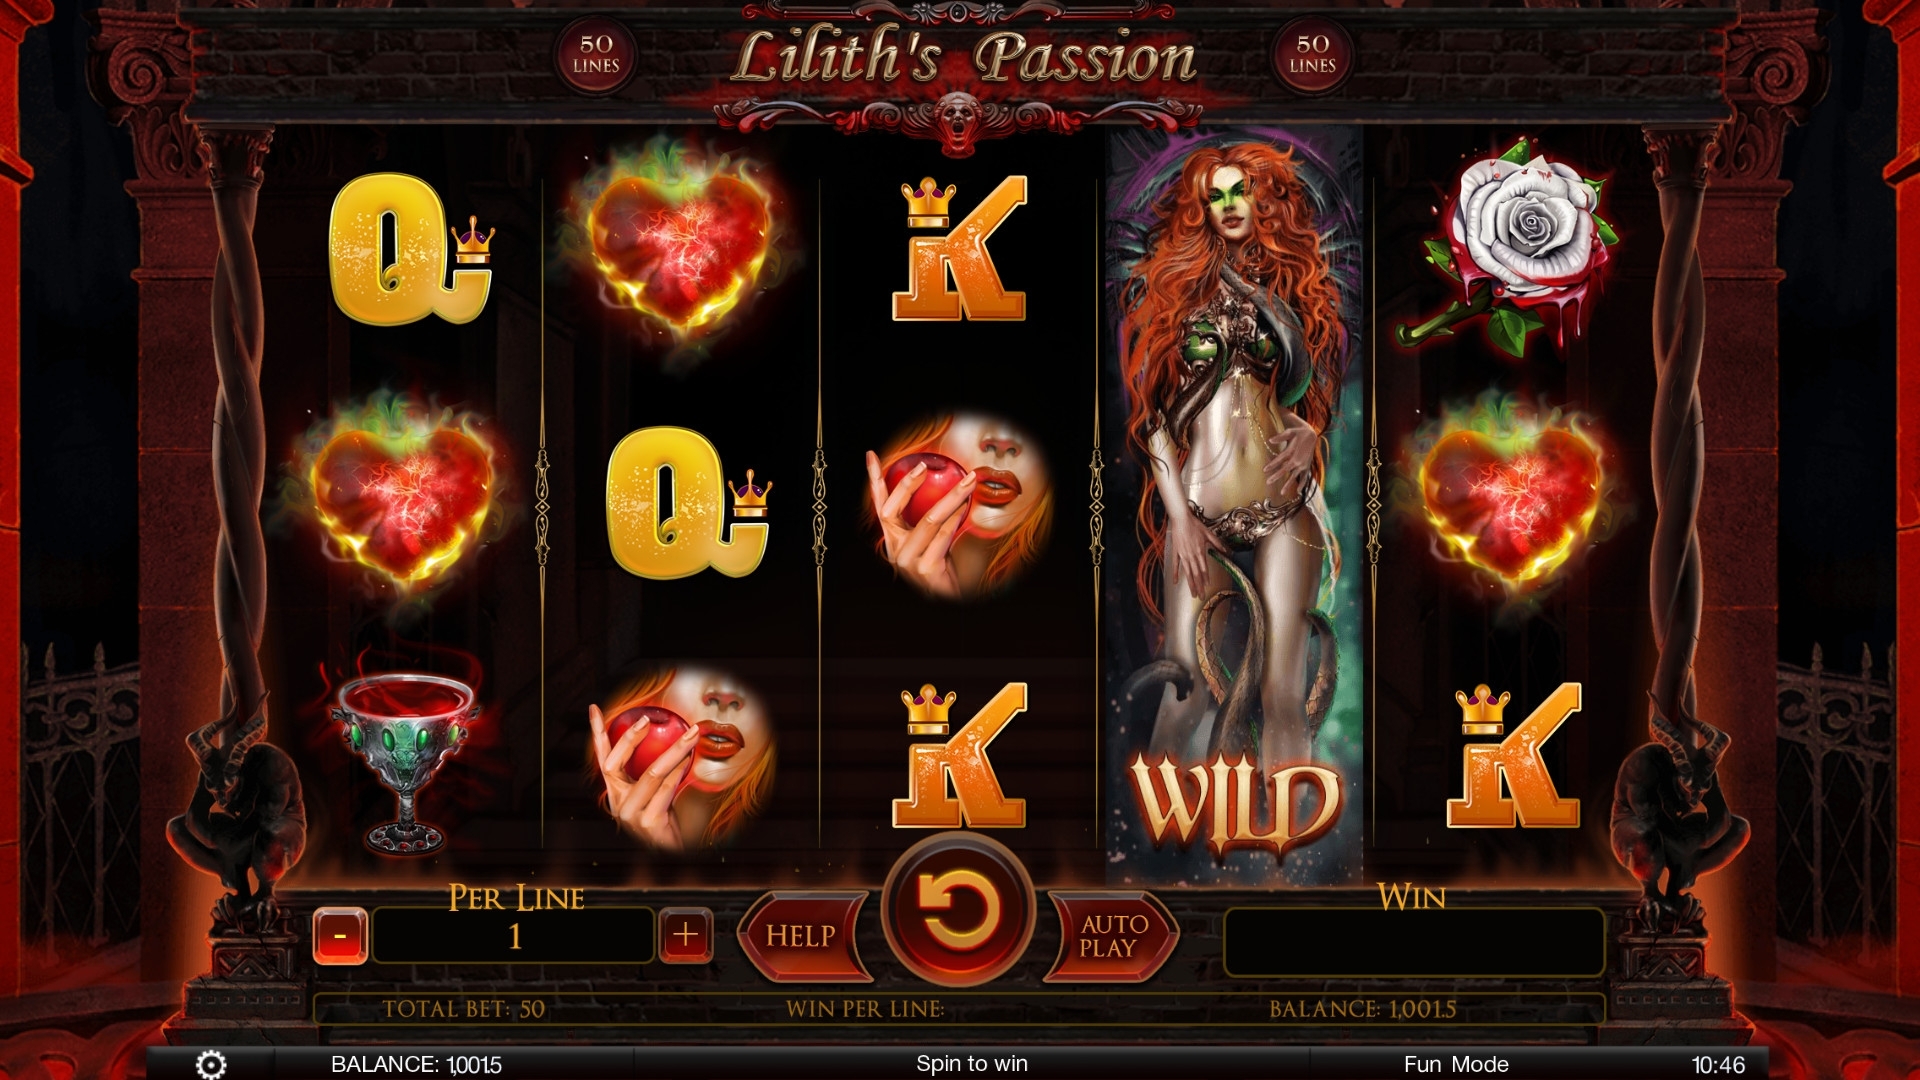 Lilith's Passion (Lilith's Passion) from category Slots